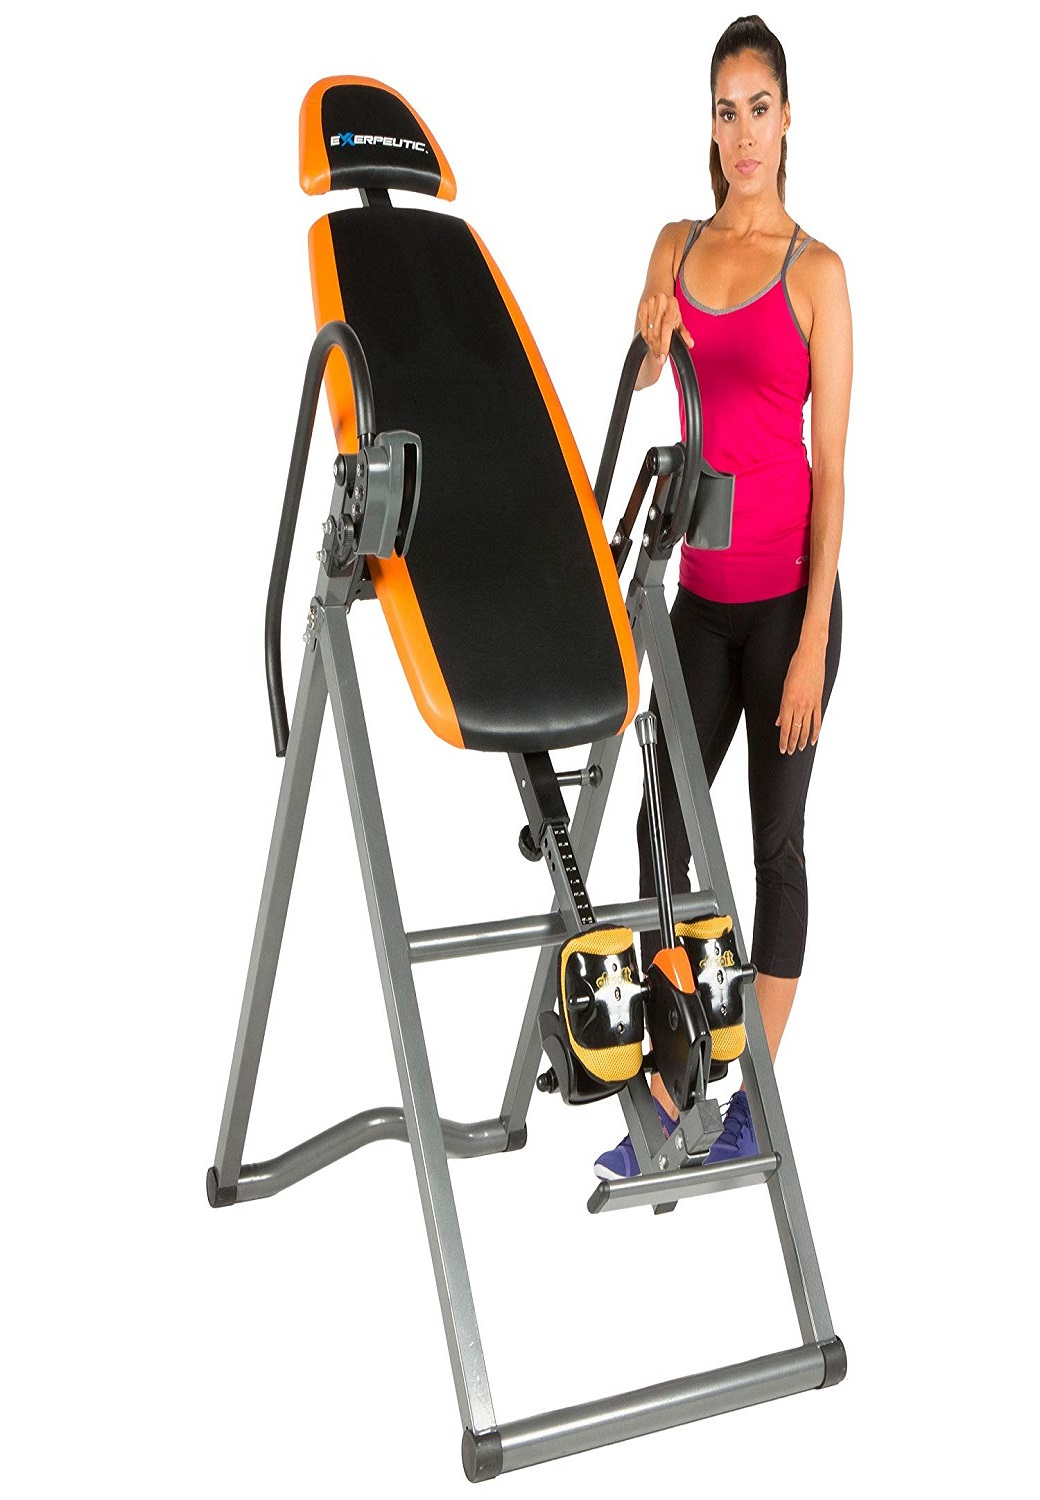 Exerpeutic 275SL Inversion Table